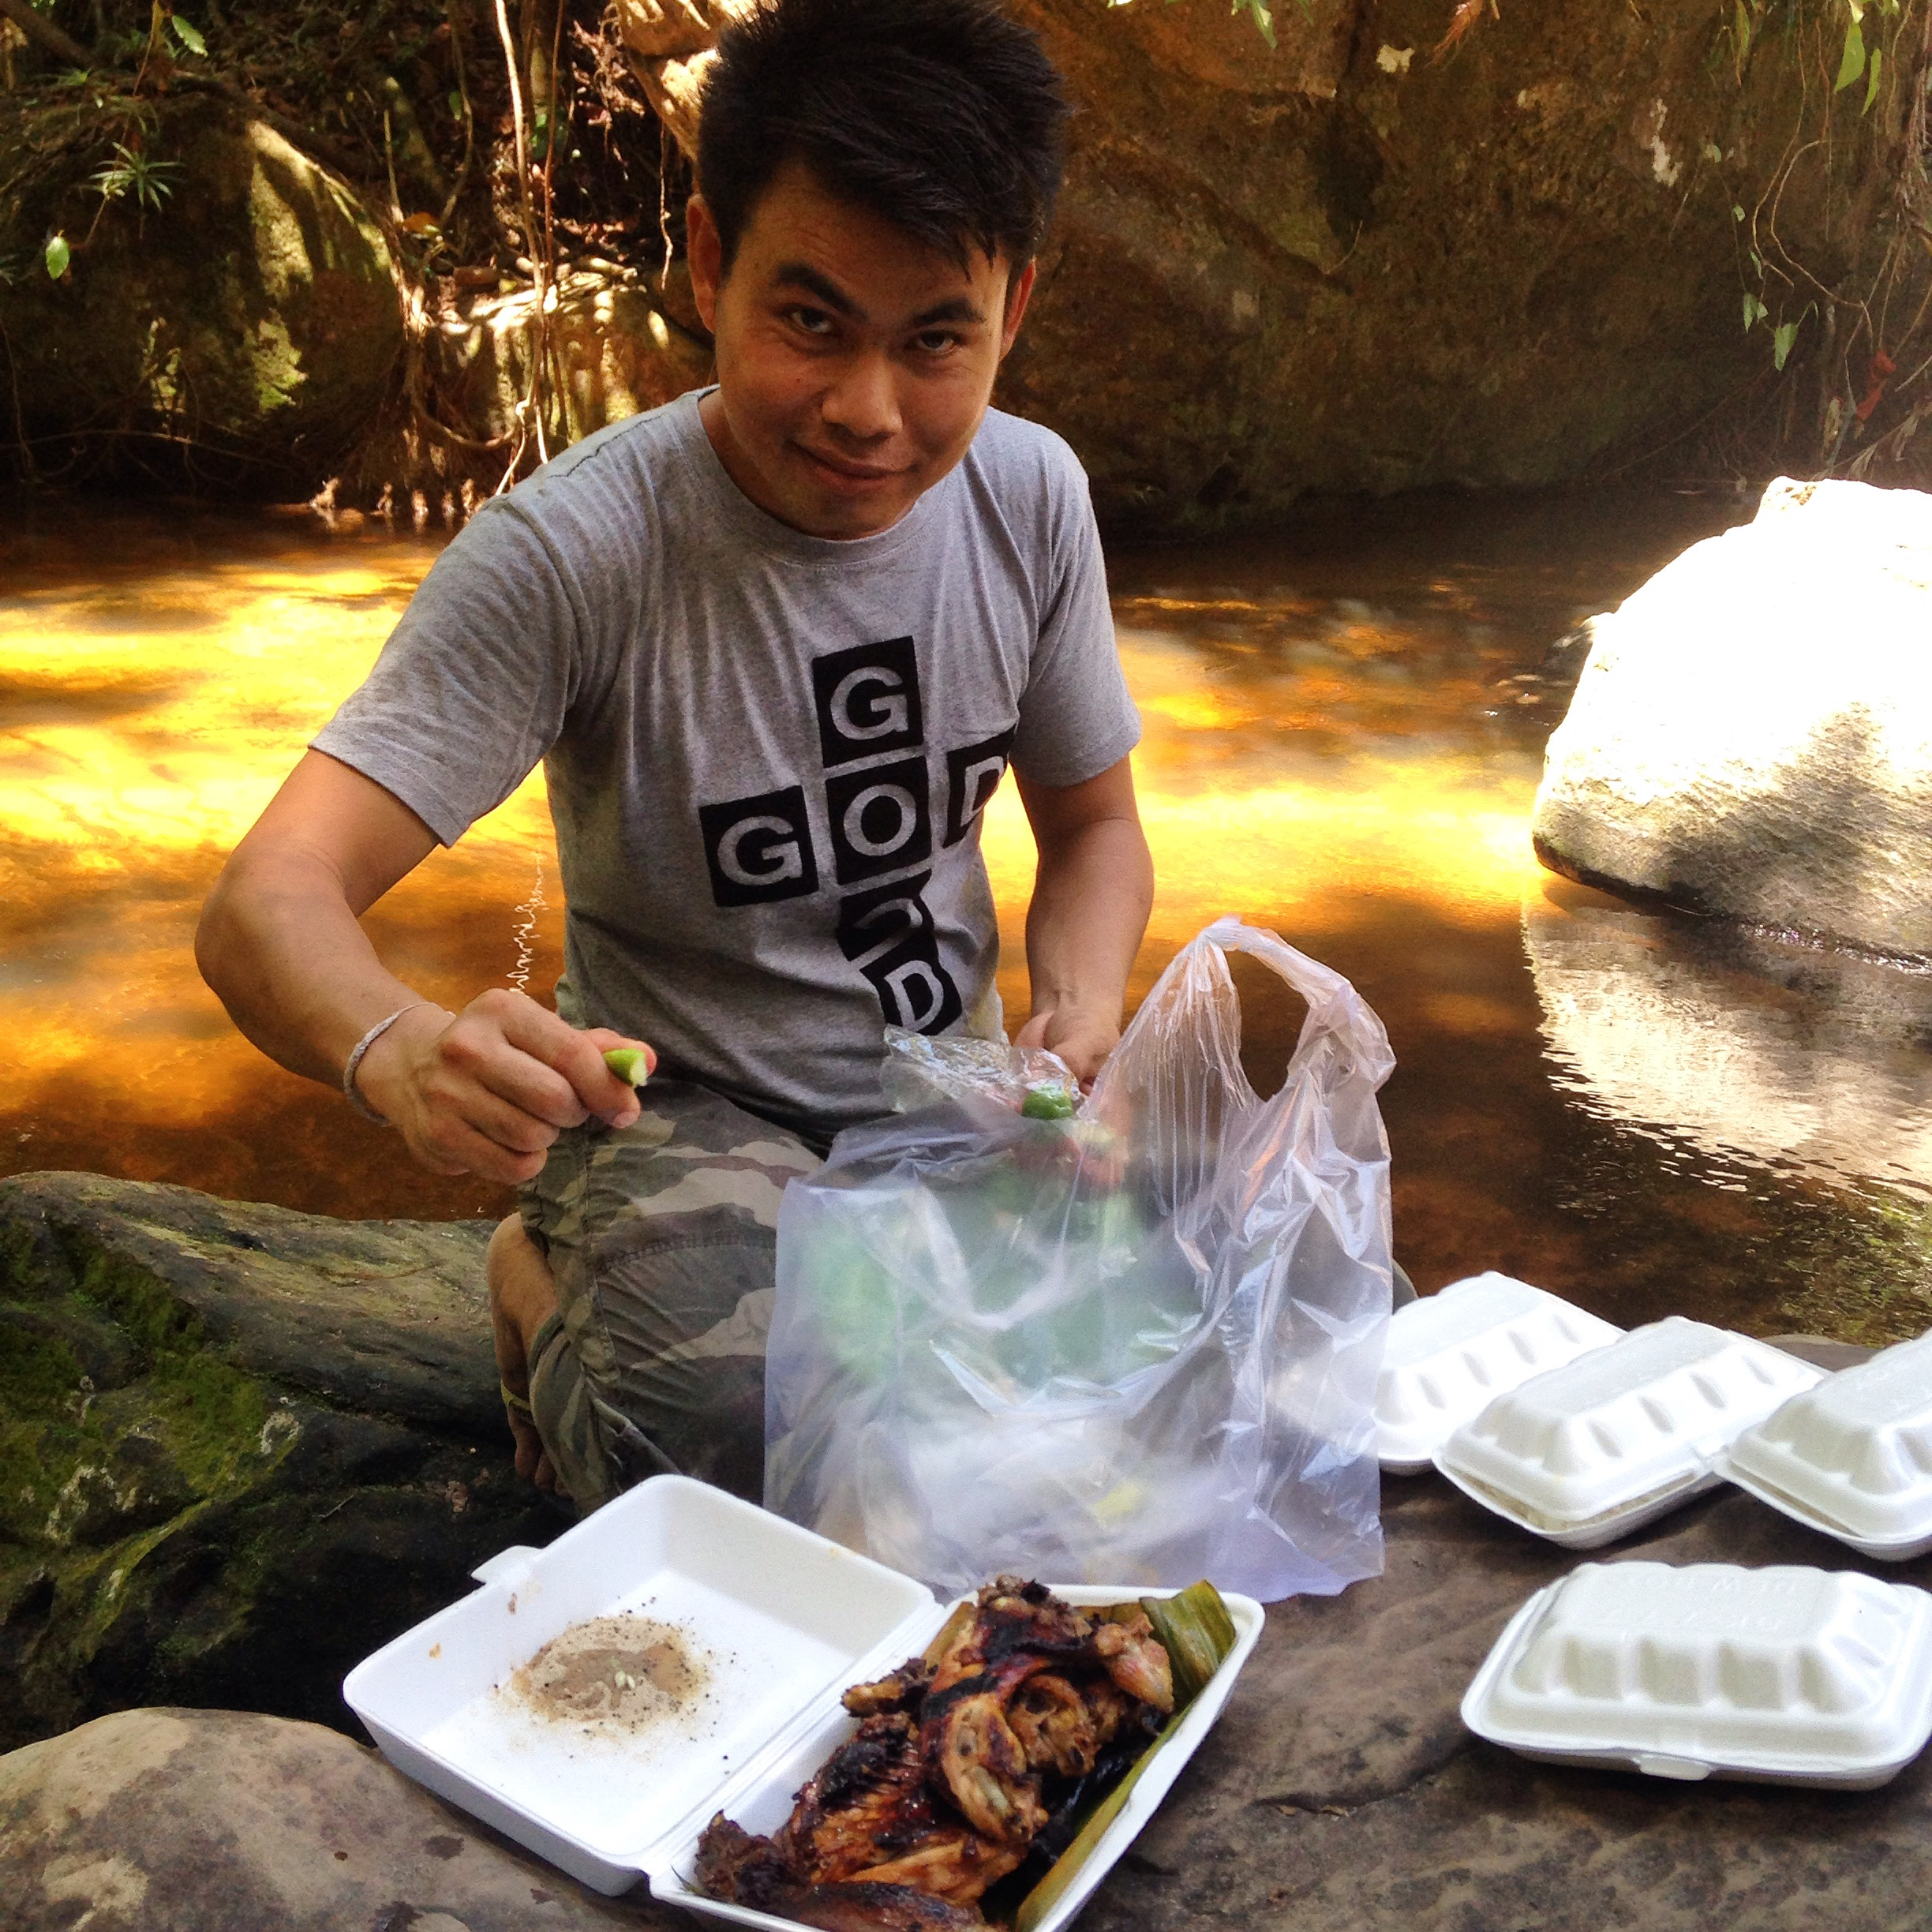 Cambodian takeaway BBQ - chicken, rice, chilli,Sprite and Angkor Beer, Kbal Spean